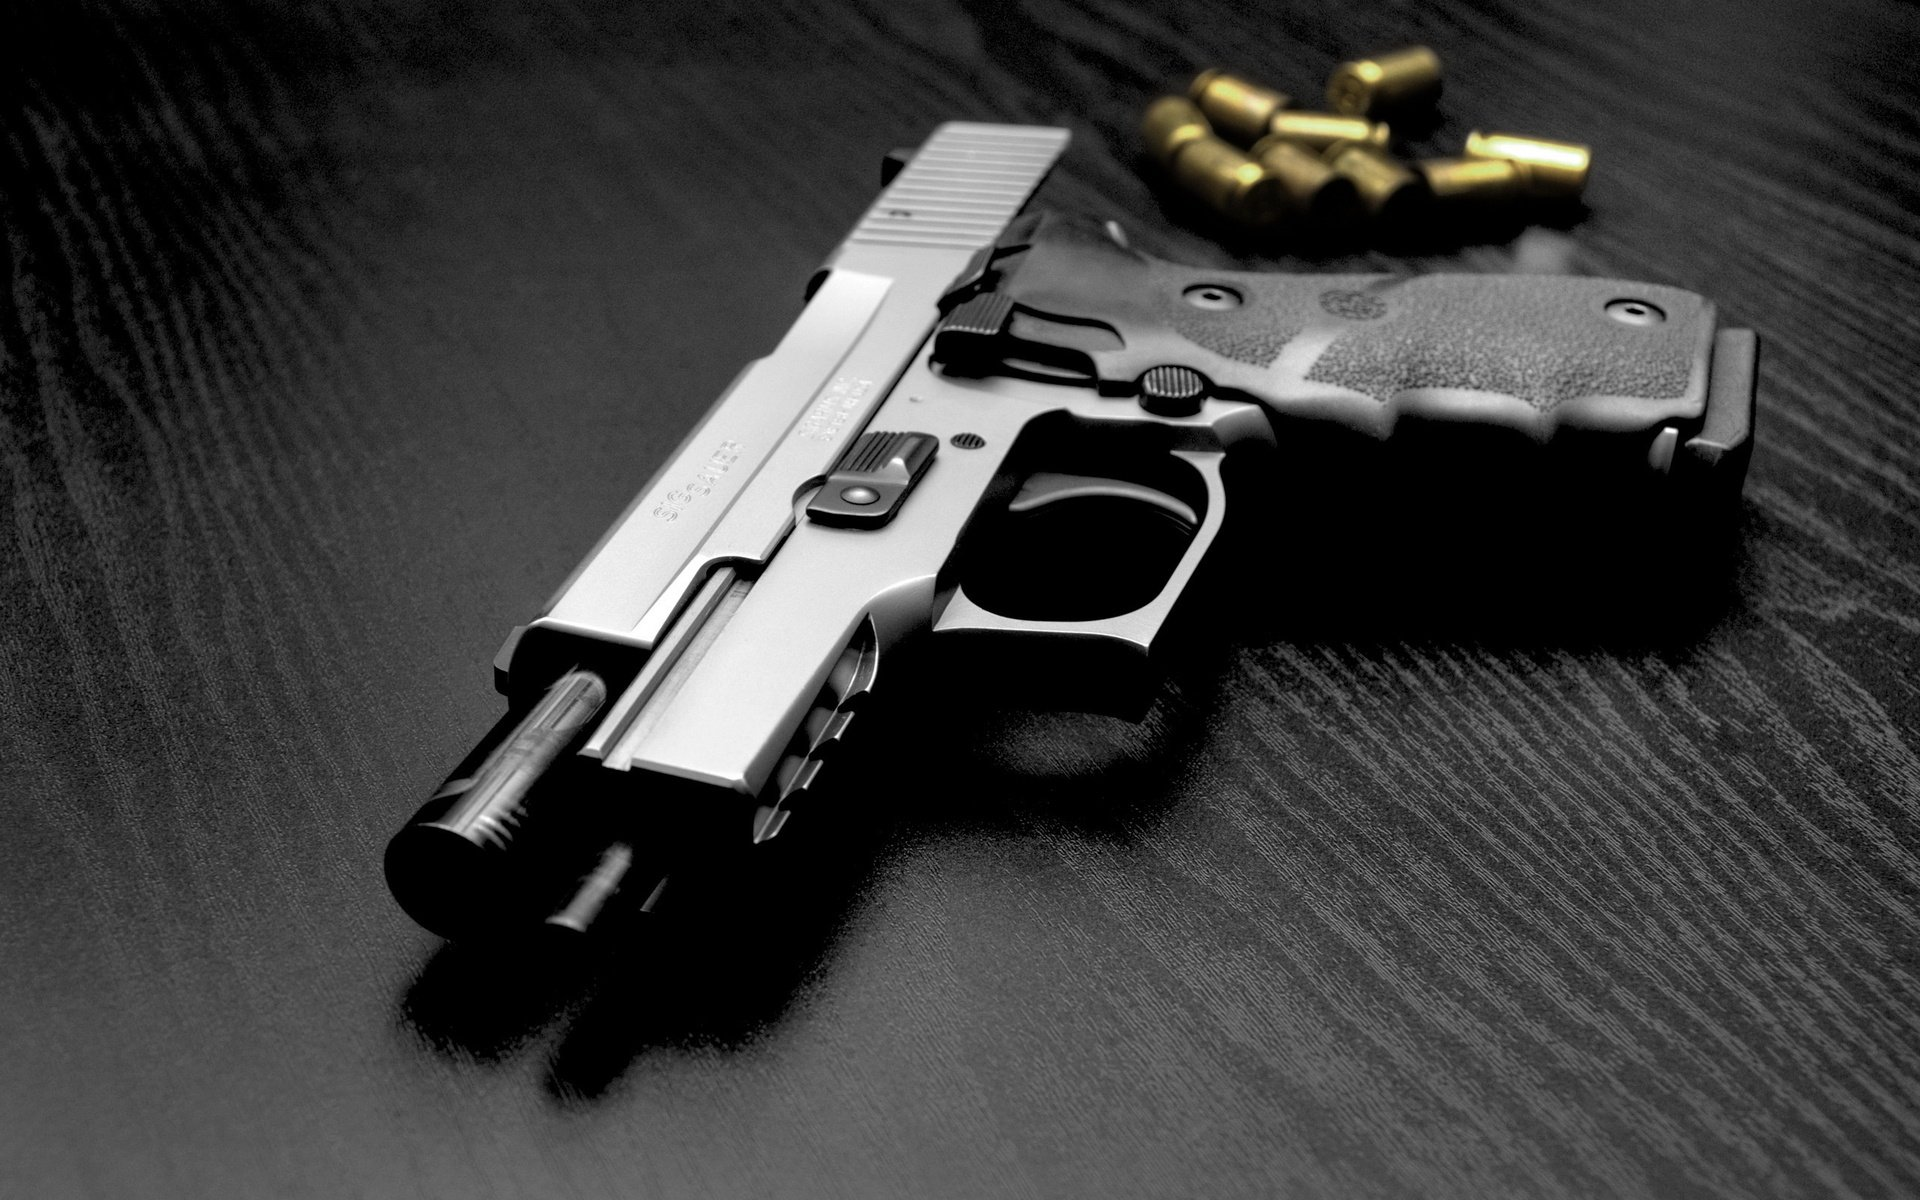 Sig Sauer Pistol Full HD Wallpaper And Background Image